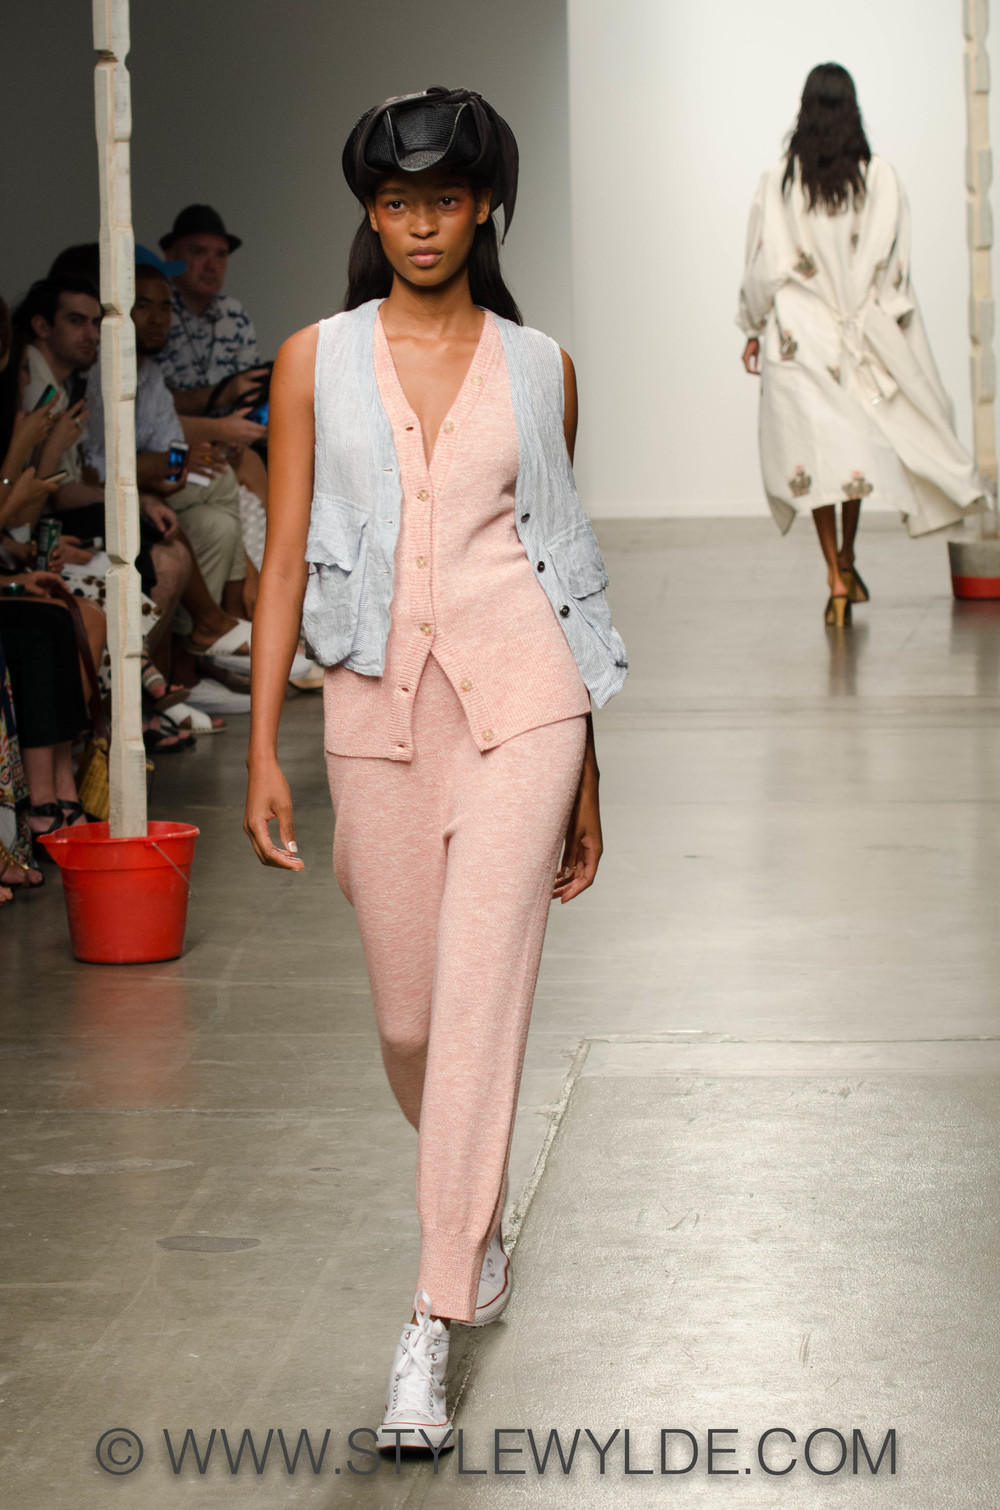 StyleWylde_Creatures_FOH_SS15 (11 of 49).jpg